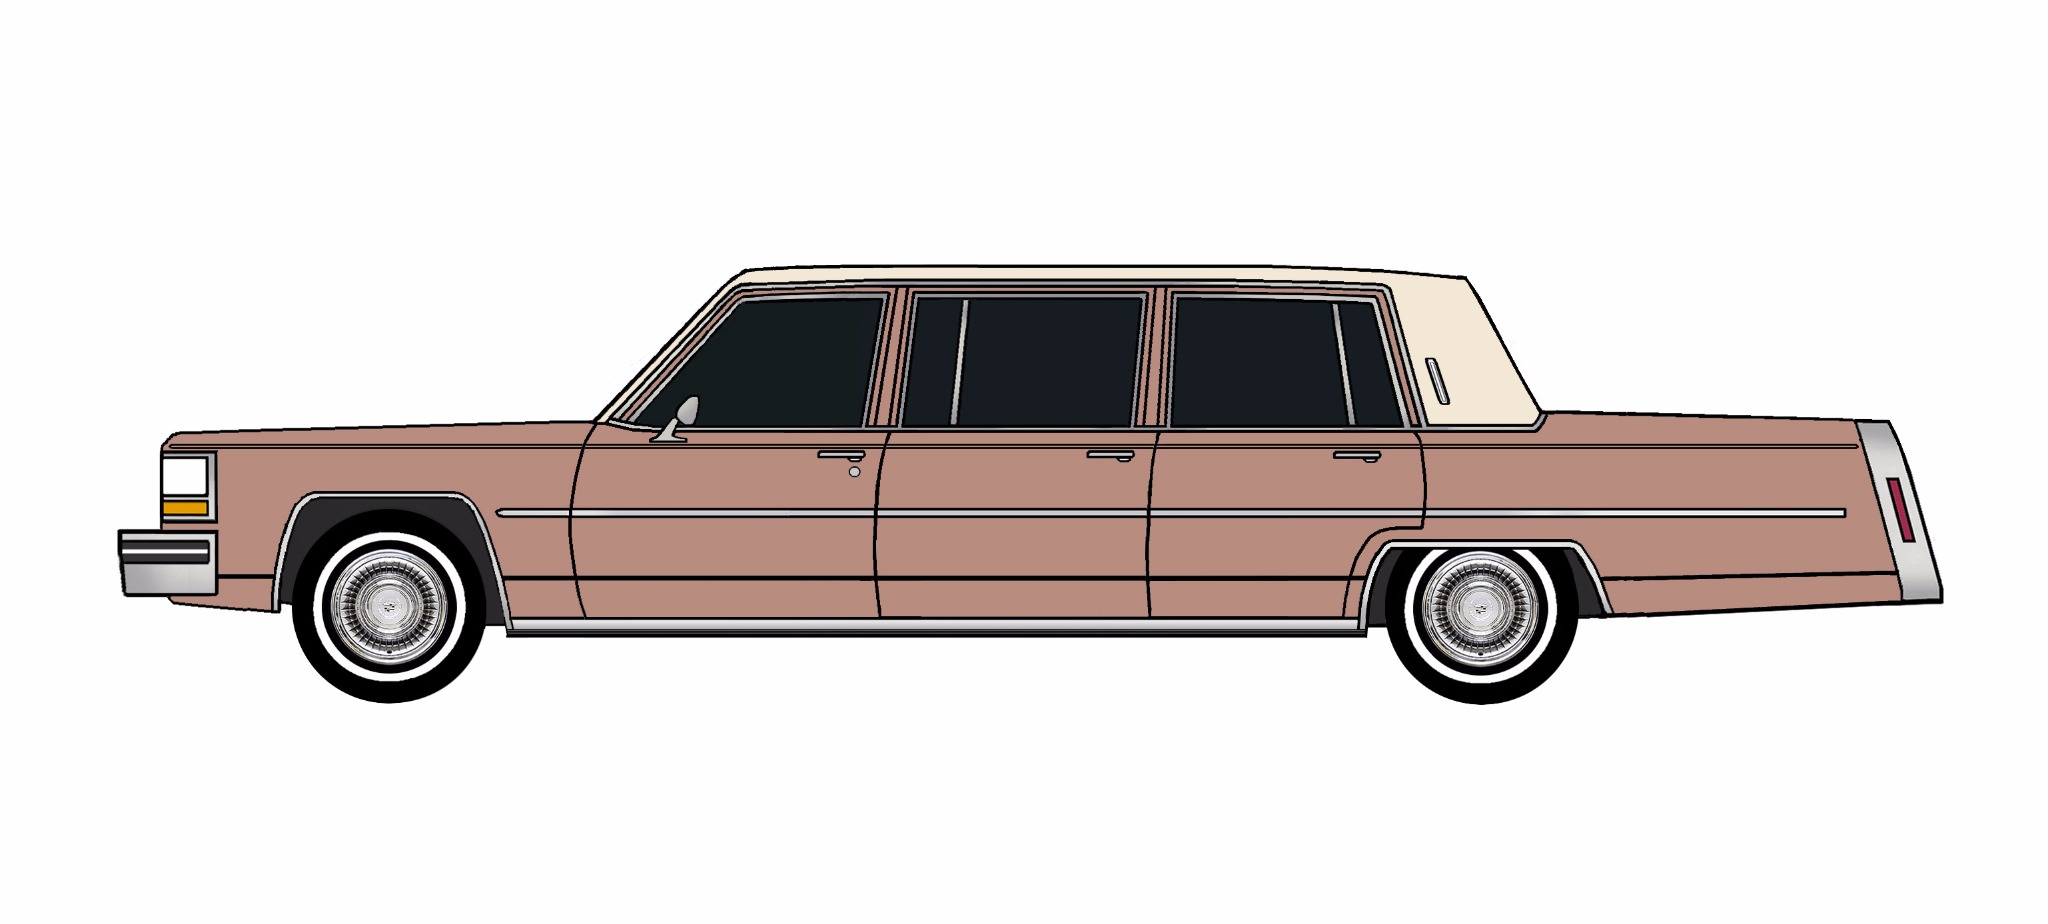 1980 Cadillac Fleetwood Funeral Limo CLAY ROSE